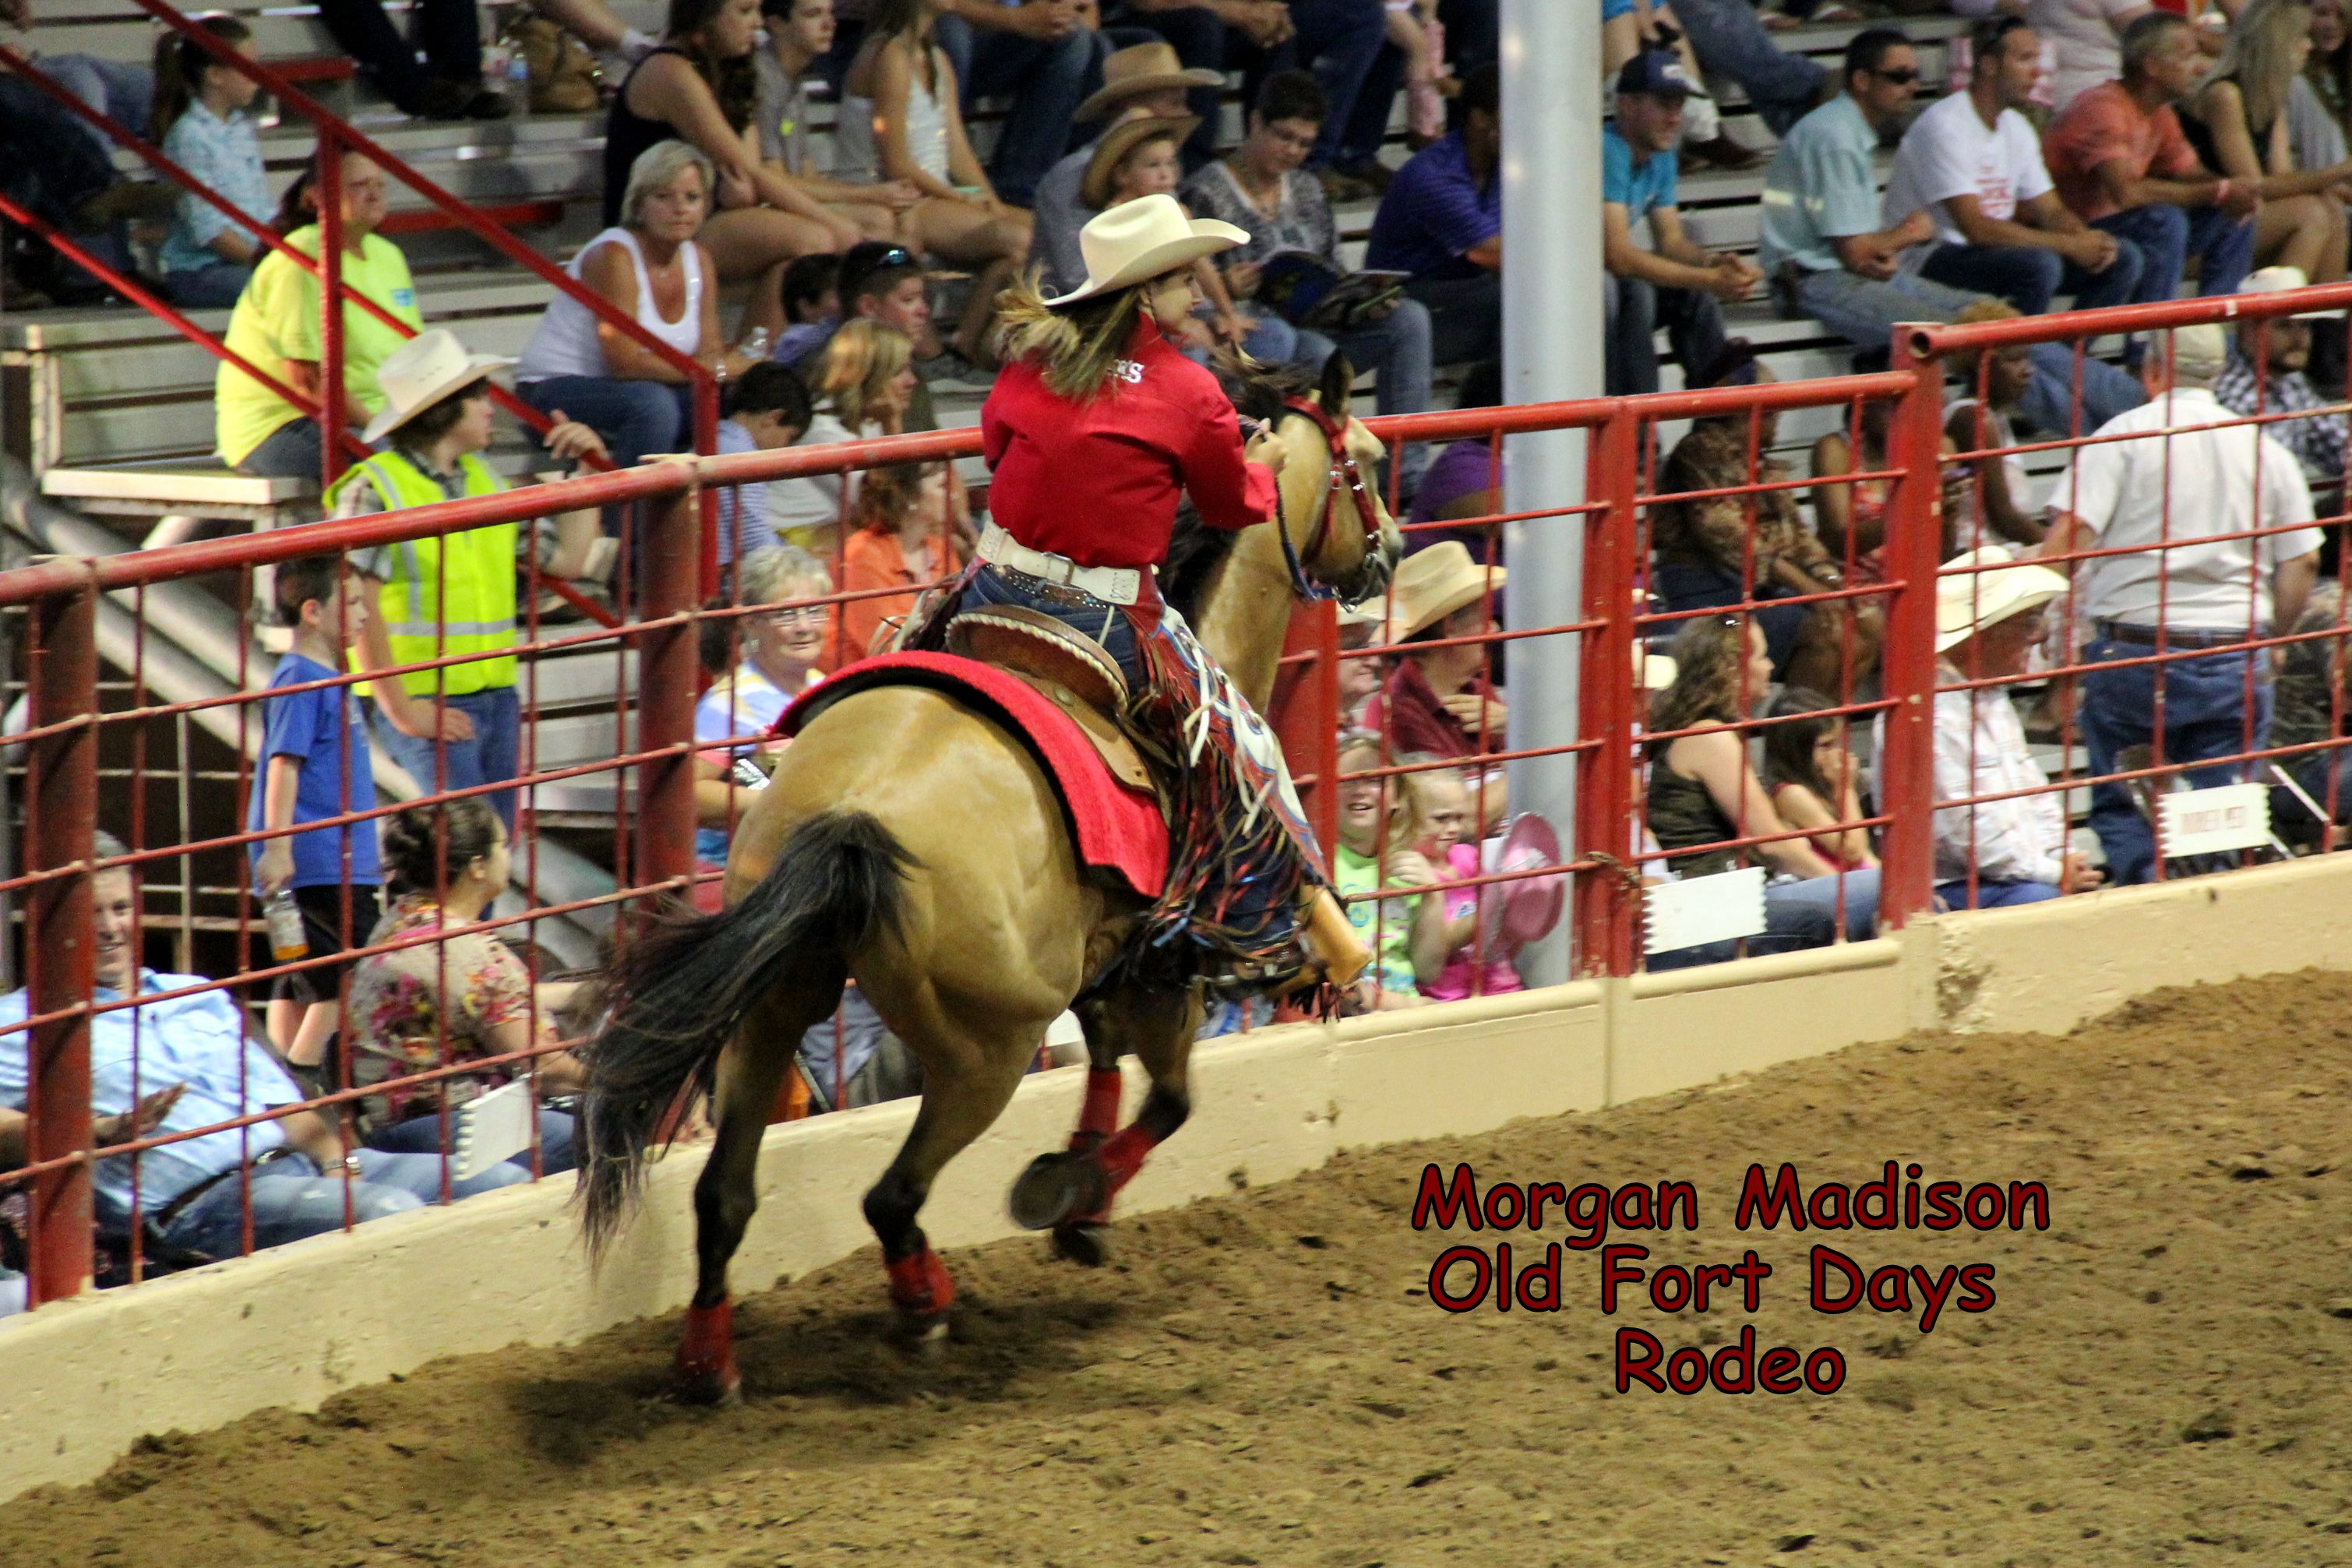 Morgan at the old fort days rodeo